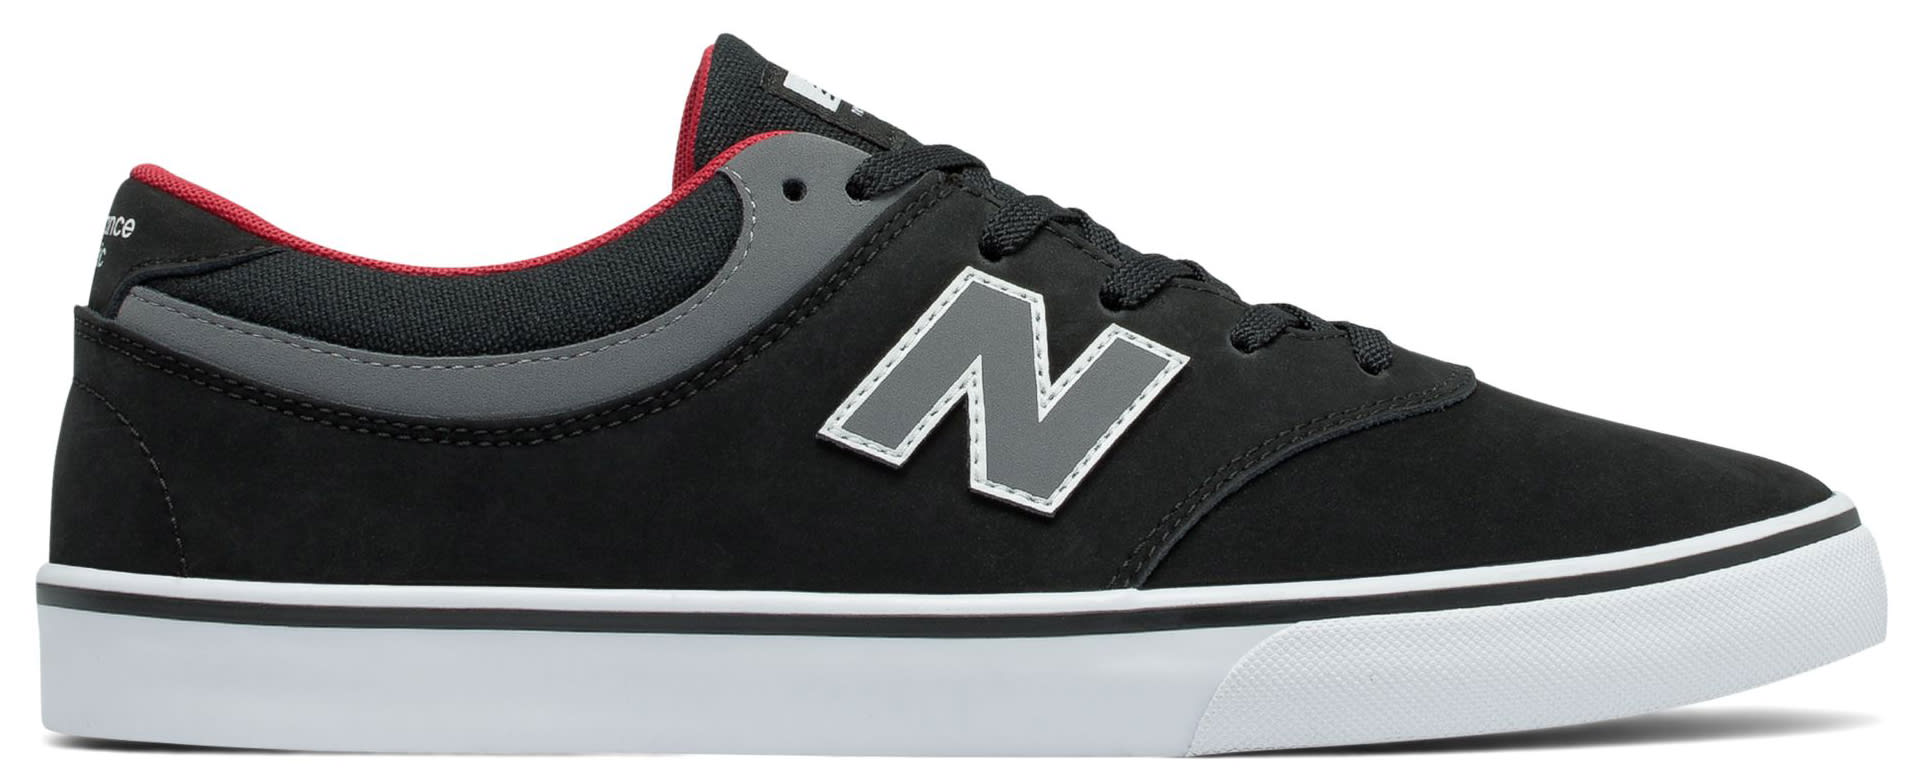 de2da9cdb90 New Balance Numeric Quincy 254 Skate Shoes - thumbnail 1